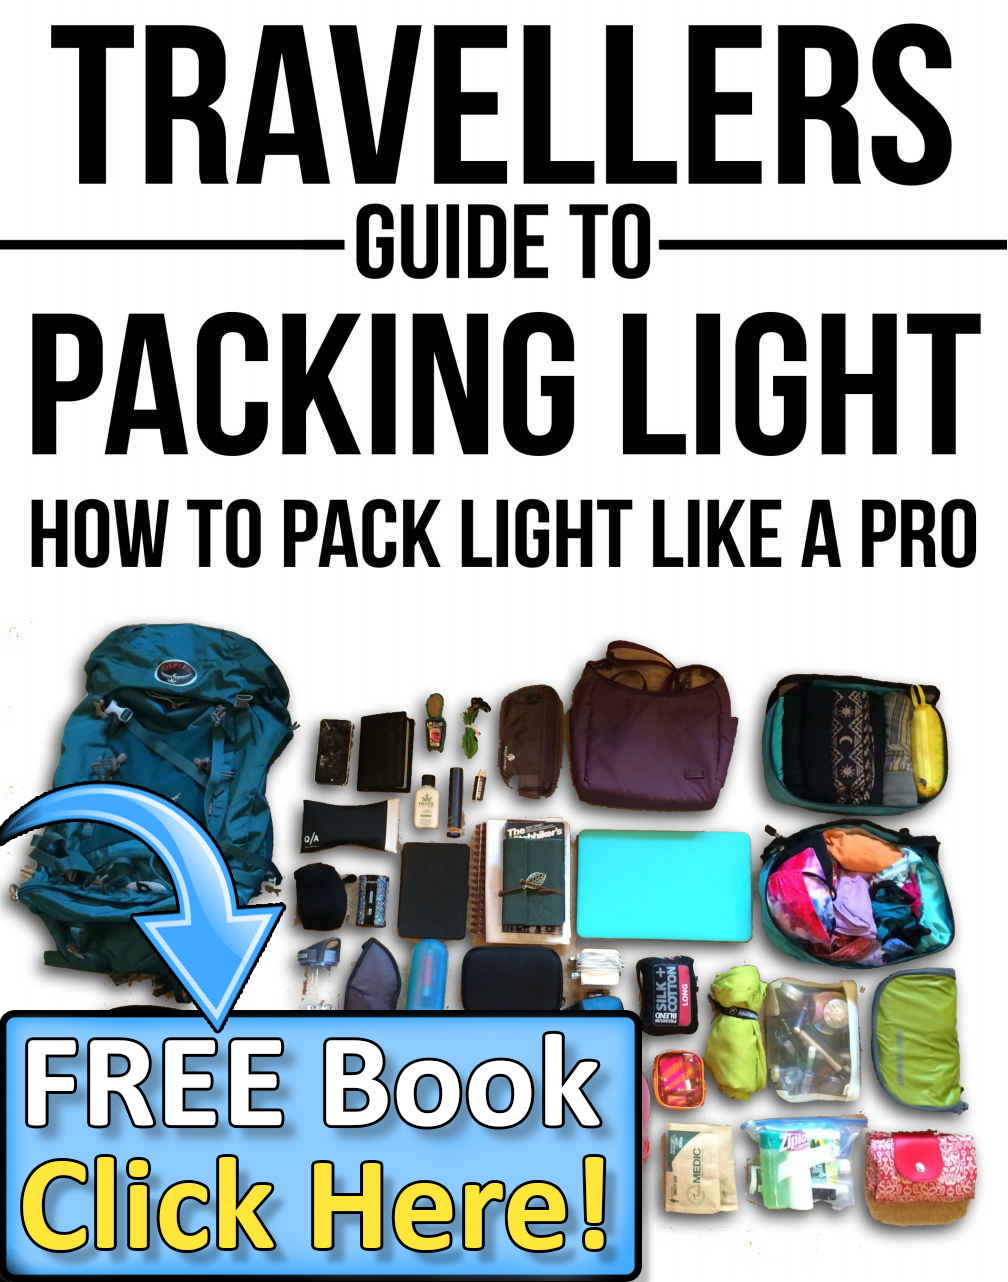 Free Travel book!